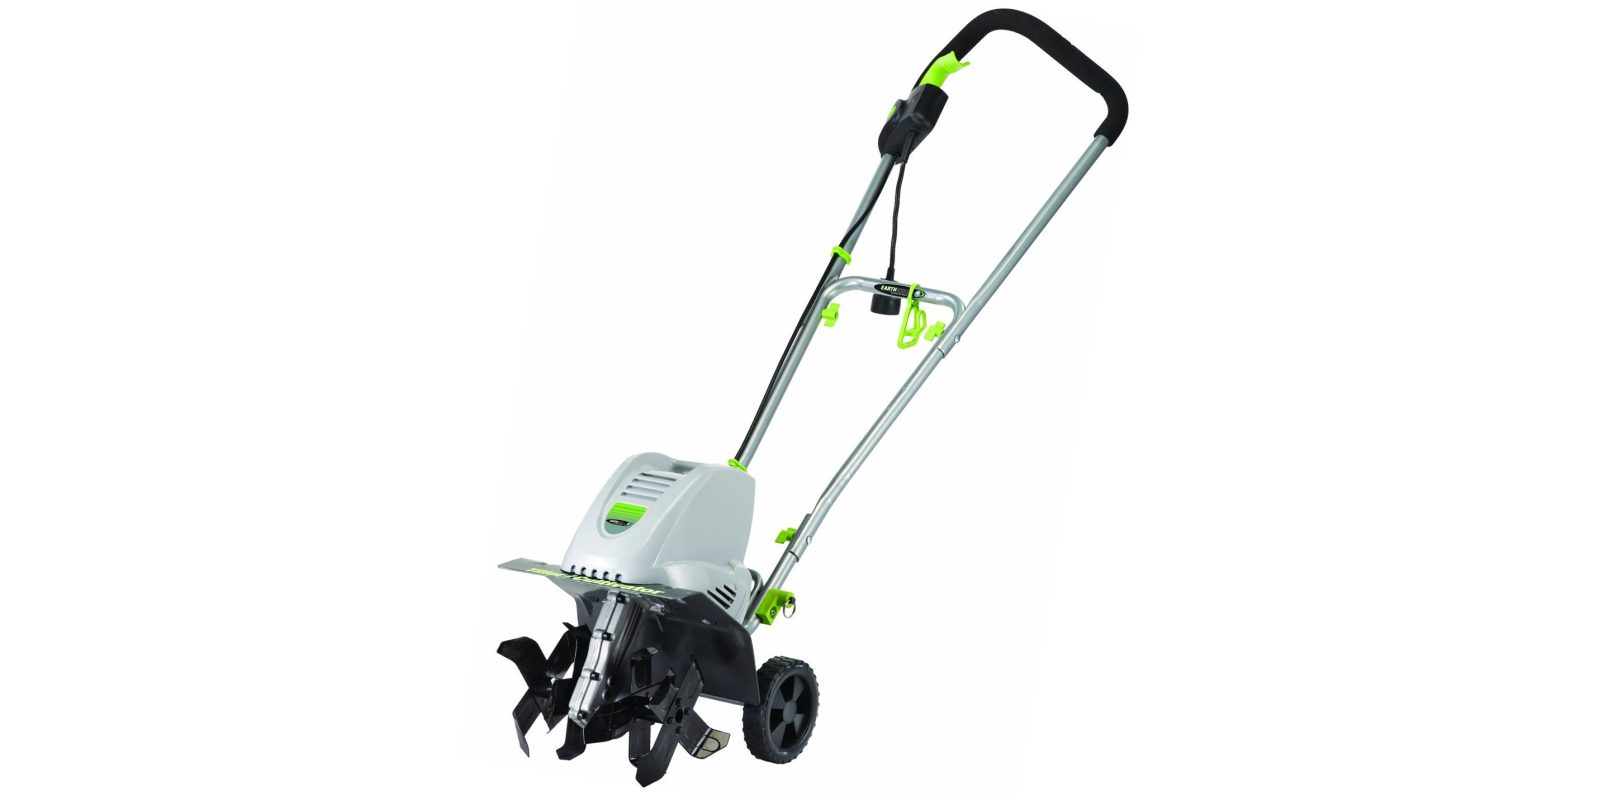 Prep for spring with Earthwise's electric tiller for $98, more in today's Green Deals - Electrek